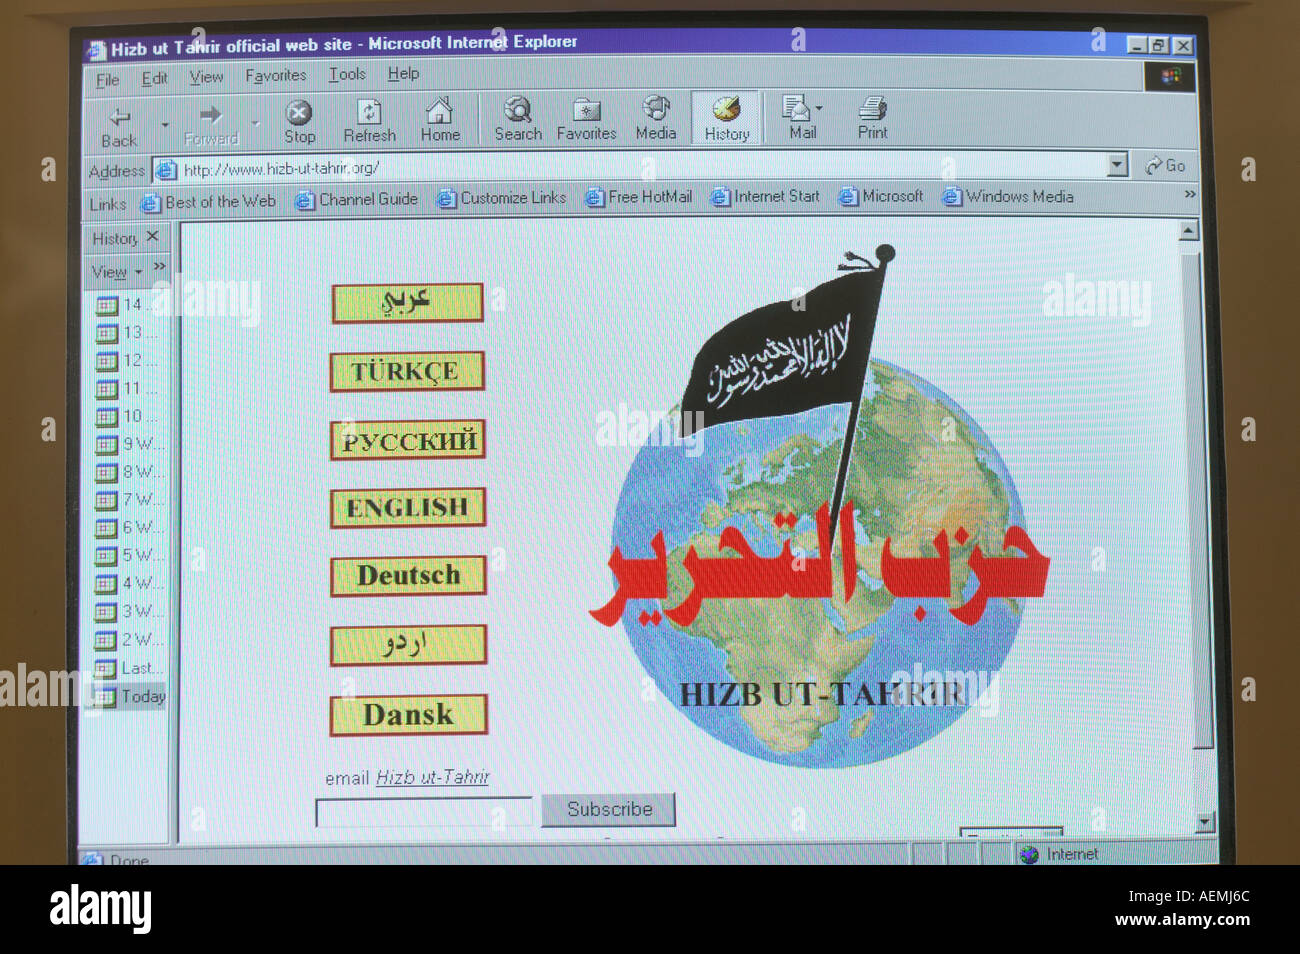 web site of Hizb ut tahrir an extremist Islamic organisation that the goverment would like to ban - Stock Image